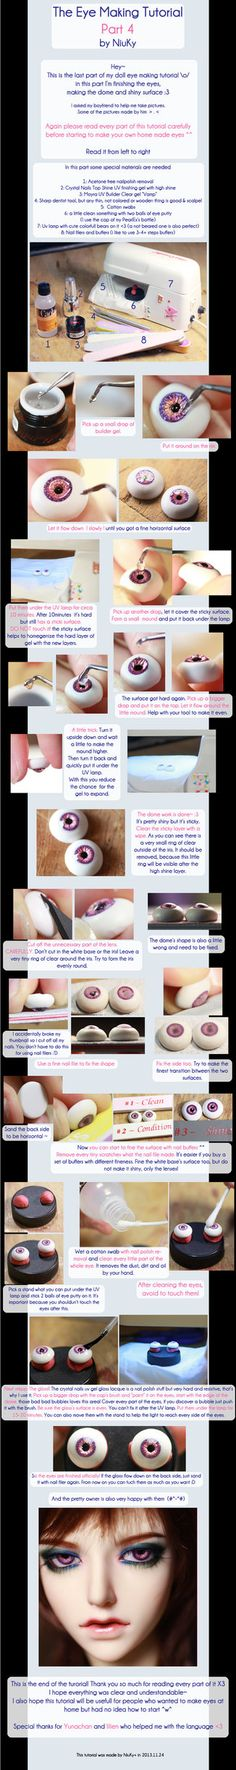 The Eye Making Tutorial 4 by NiuKy on DeviantArt